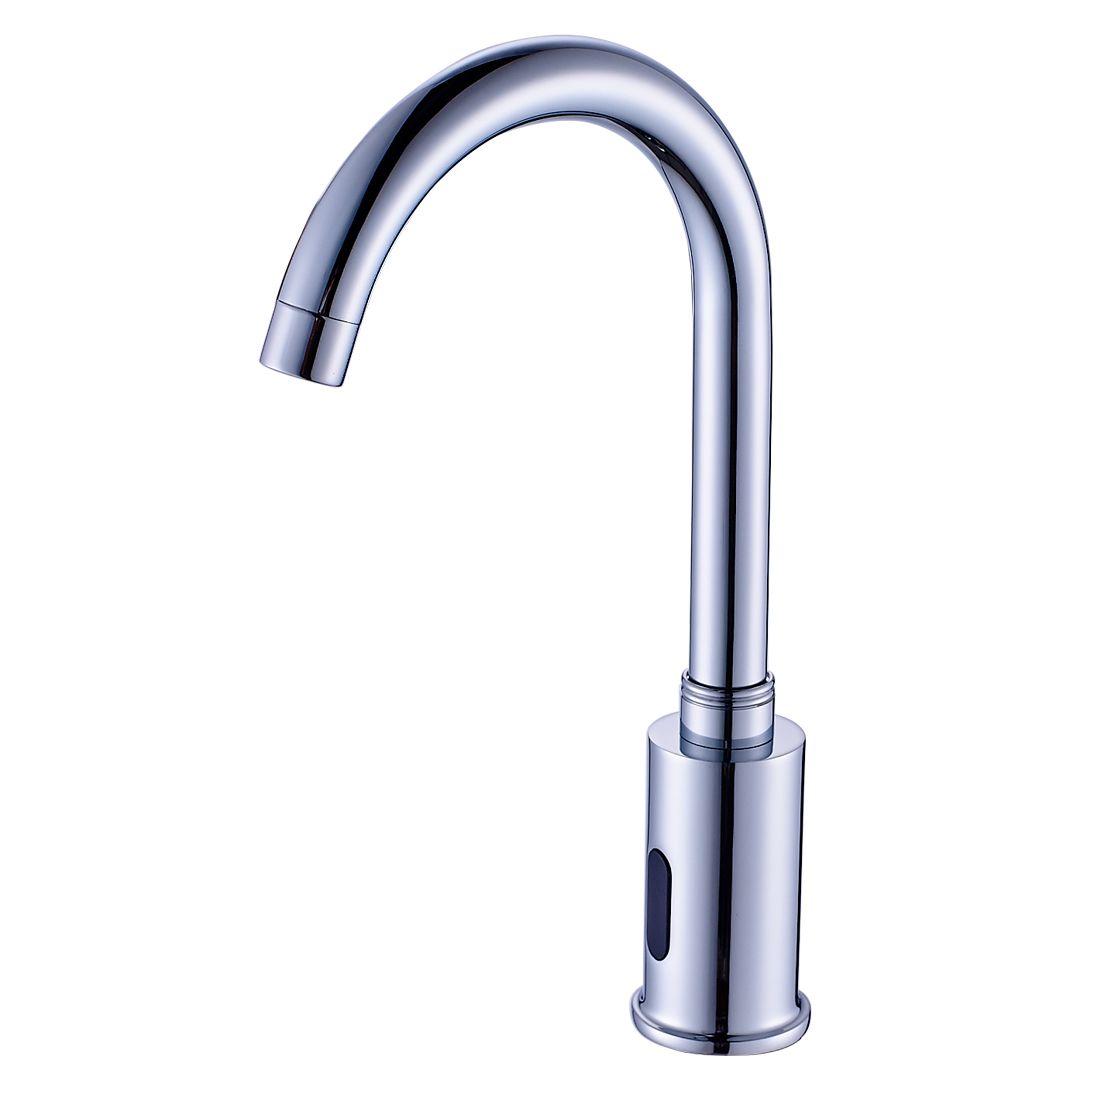 FLG High Quality Automatic Faucet Chrome Touchless Bathroom Basin Faucet